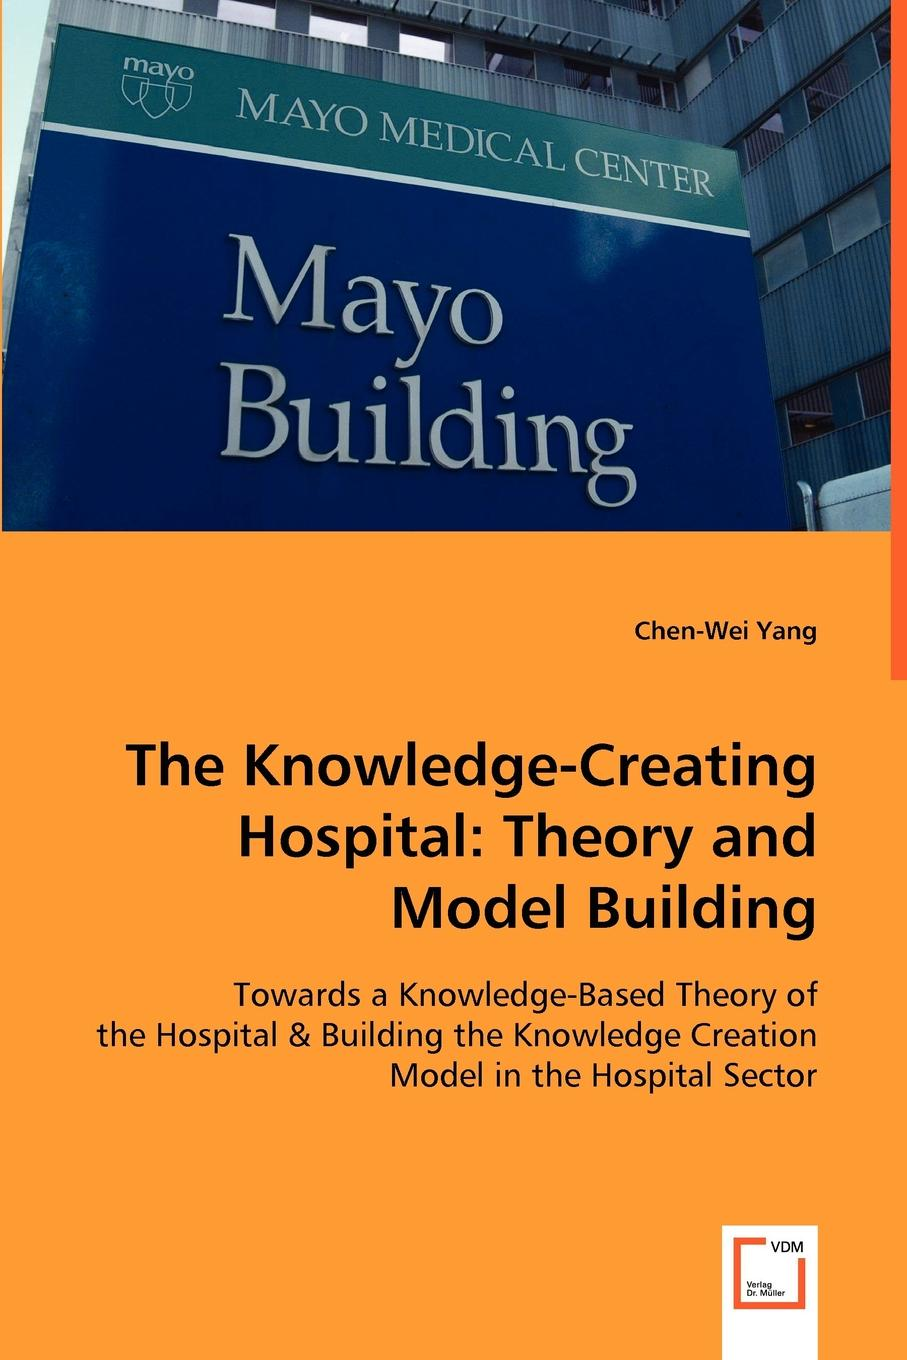 The Knowledge-Creating Hospital. Theory and Model Building This book presents the latest management ideas in knowledge...